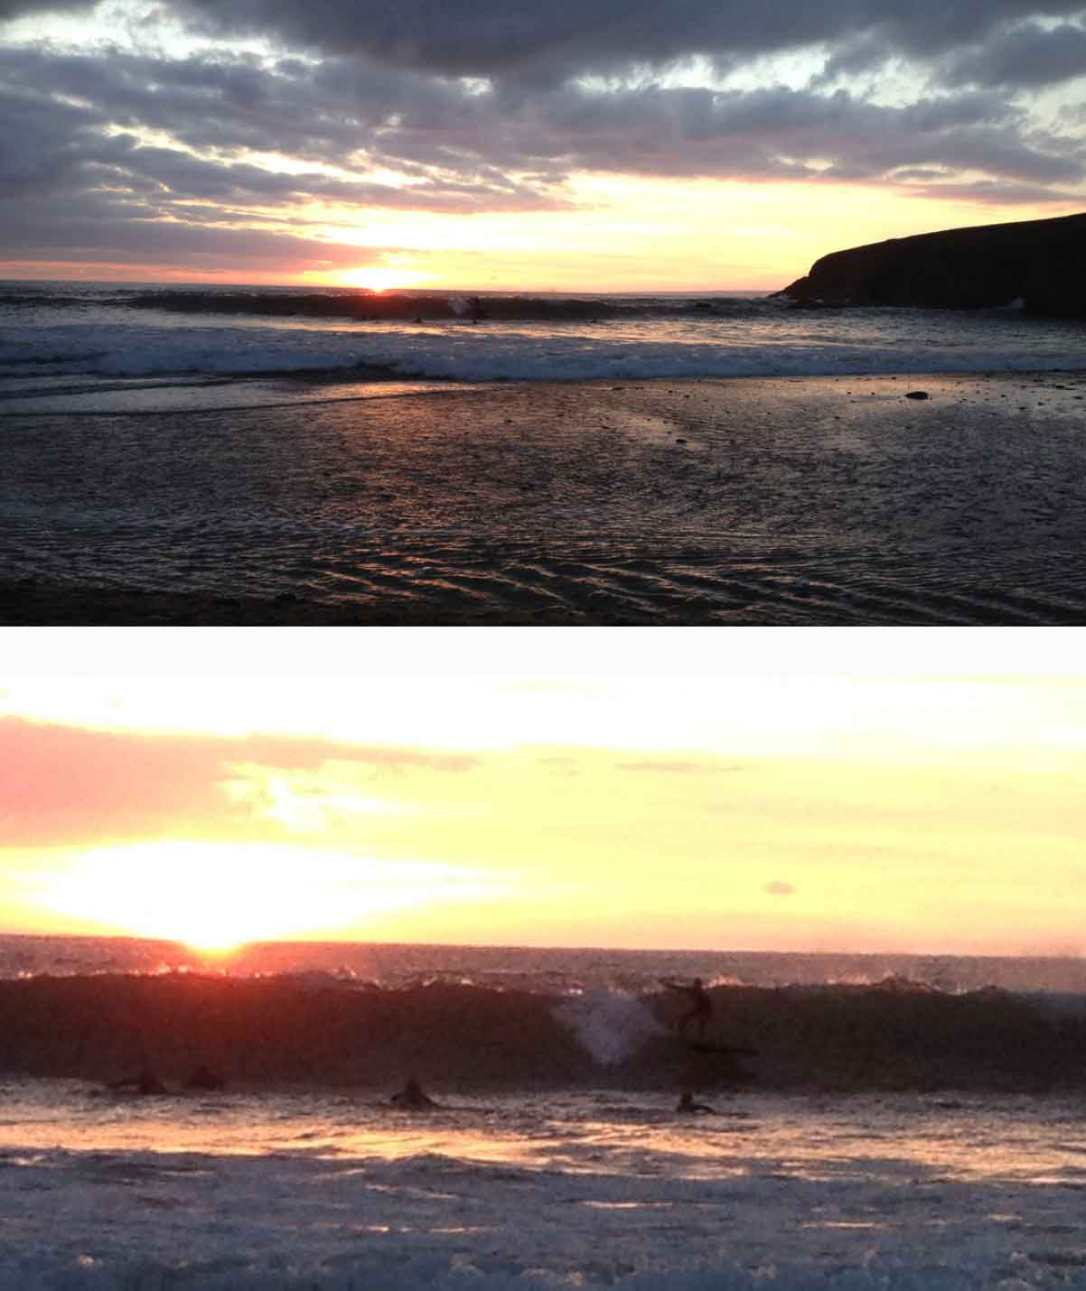 sunset surfers at poldhu cove beach Cornwall